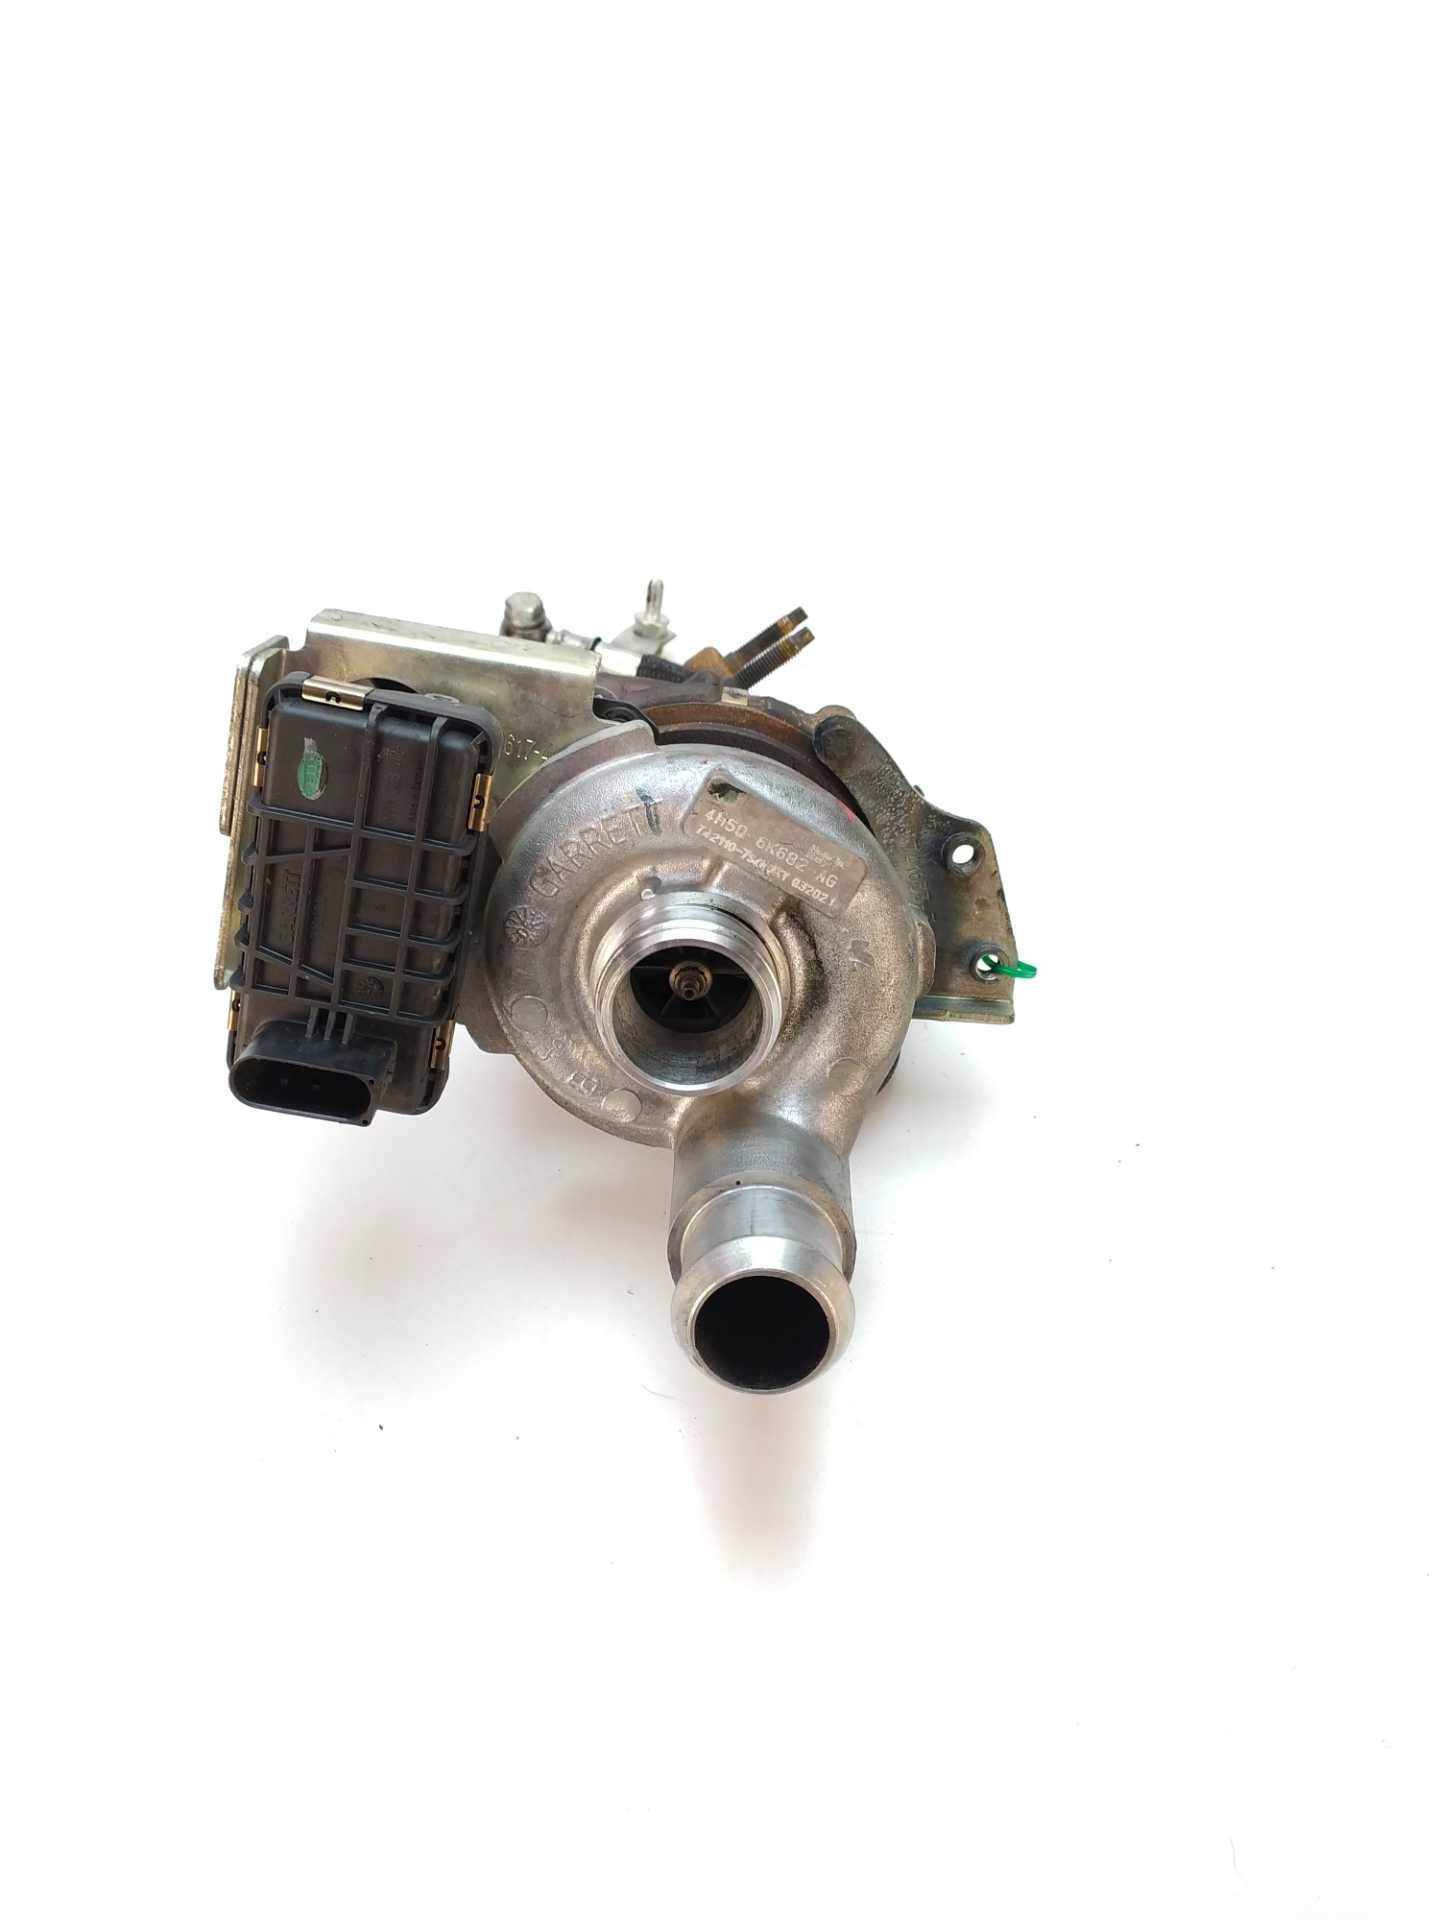 TURBO FORD FOCUS II 1.8 TDCi (85 KW / 115 CV) (01.2005 - 09.2012)